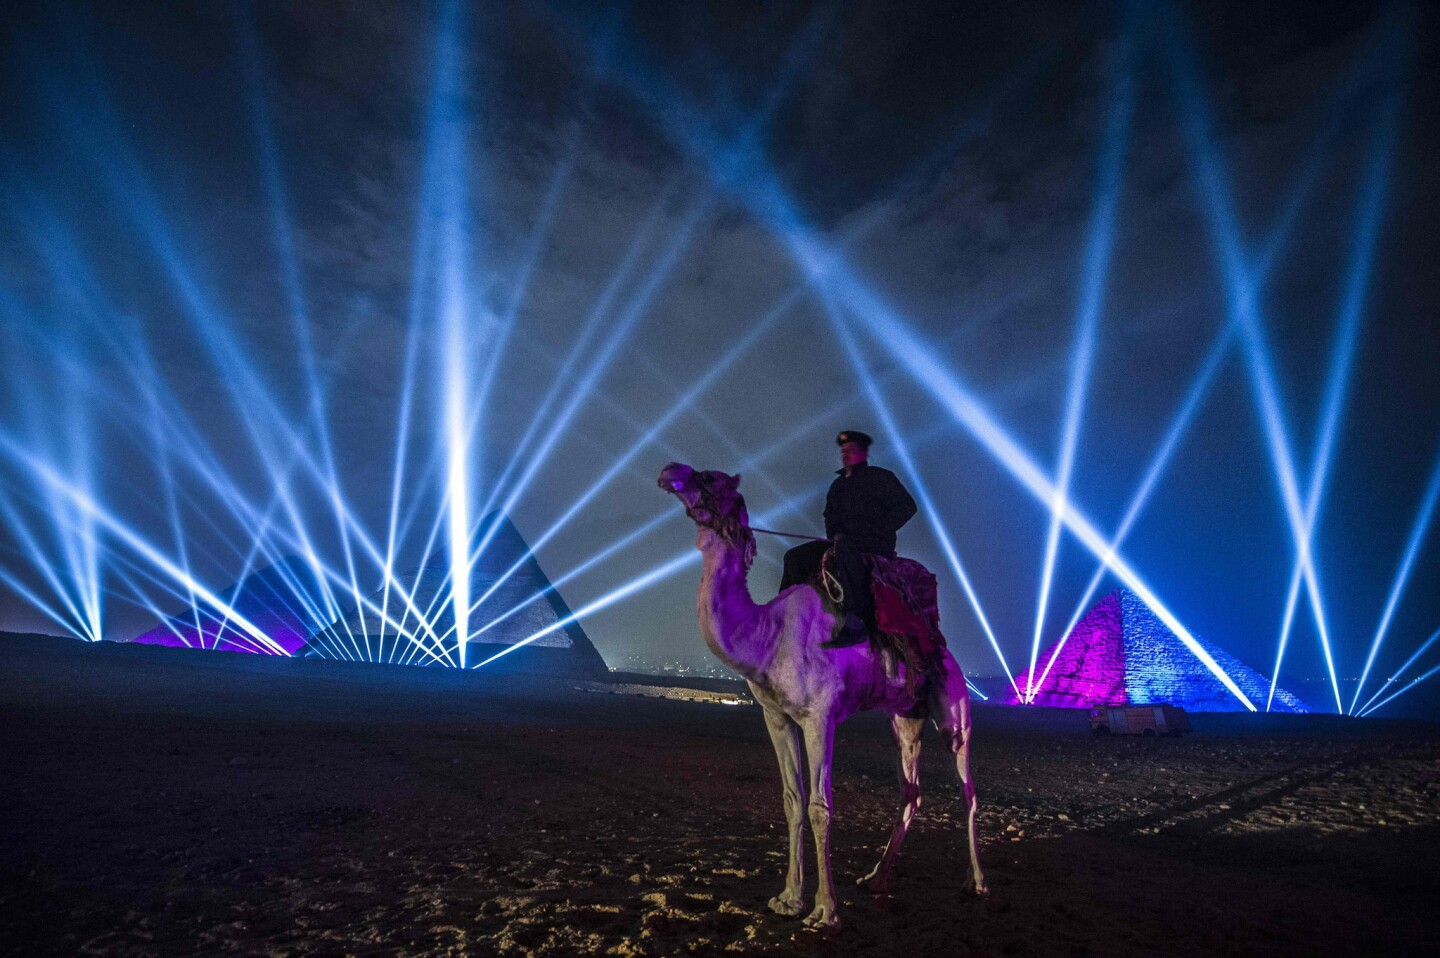 An Egyptian policeman stands guard during New Year celebrations in front of the pyramids near Cairo.